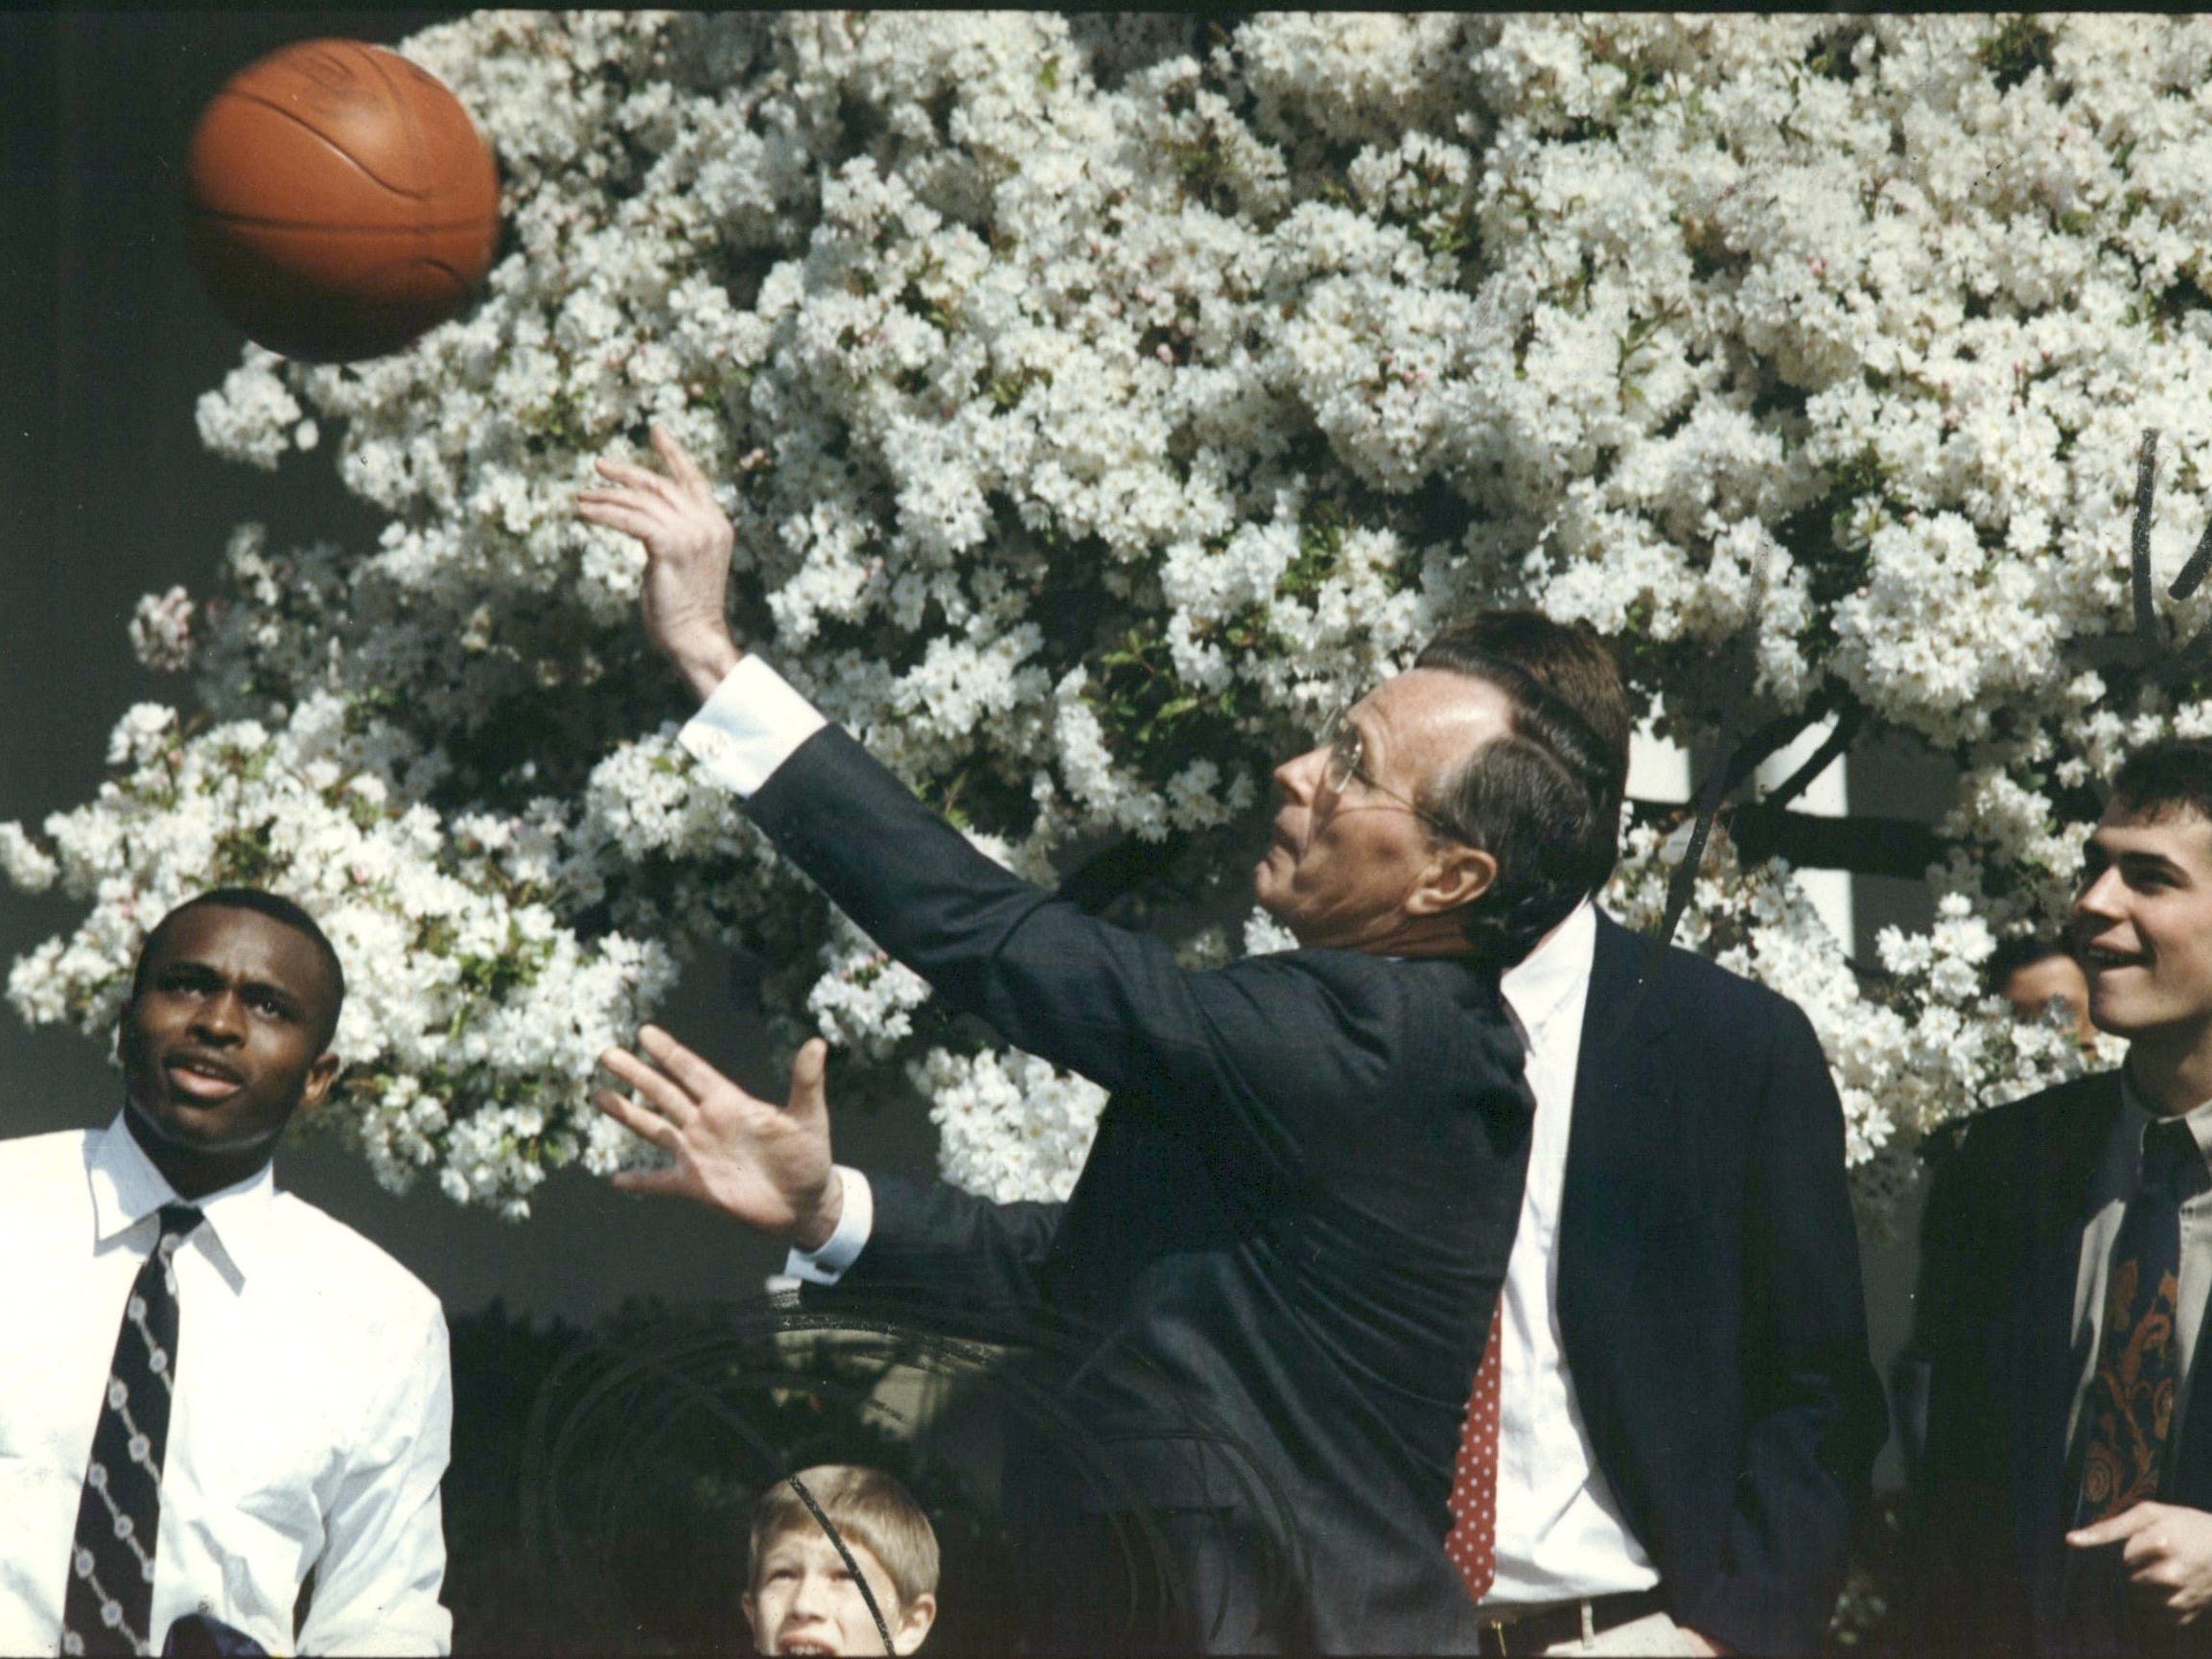 President George Bush shoots a free throw in April 1989 at a portable basket in the White House Rose Garden as University of Michigan players watch. The NCAA champion Wolverines were the guests of Bush, who sank the free throw, though the ball did bounce around the rim. From left are Rumeal Robinson, J.P. Oosterbaan and Rob Pelinka.